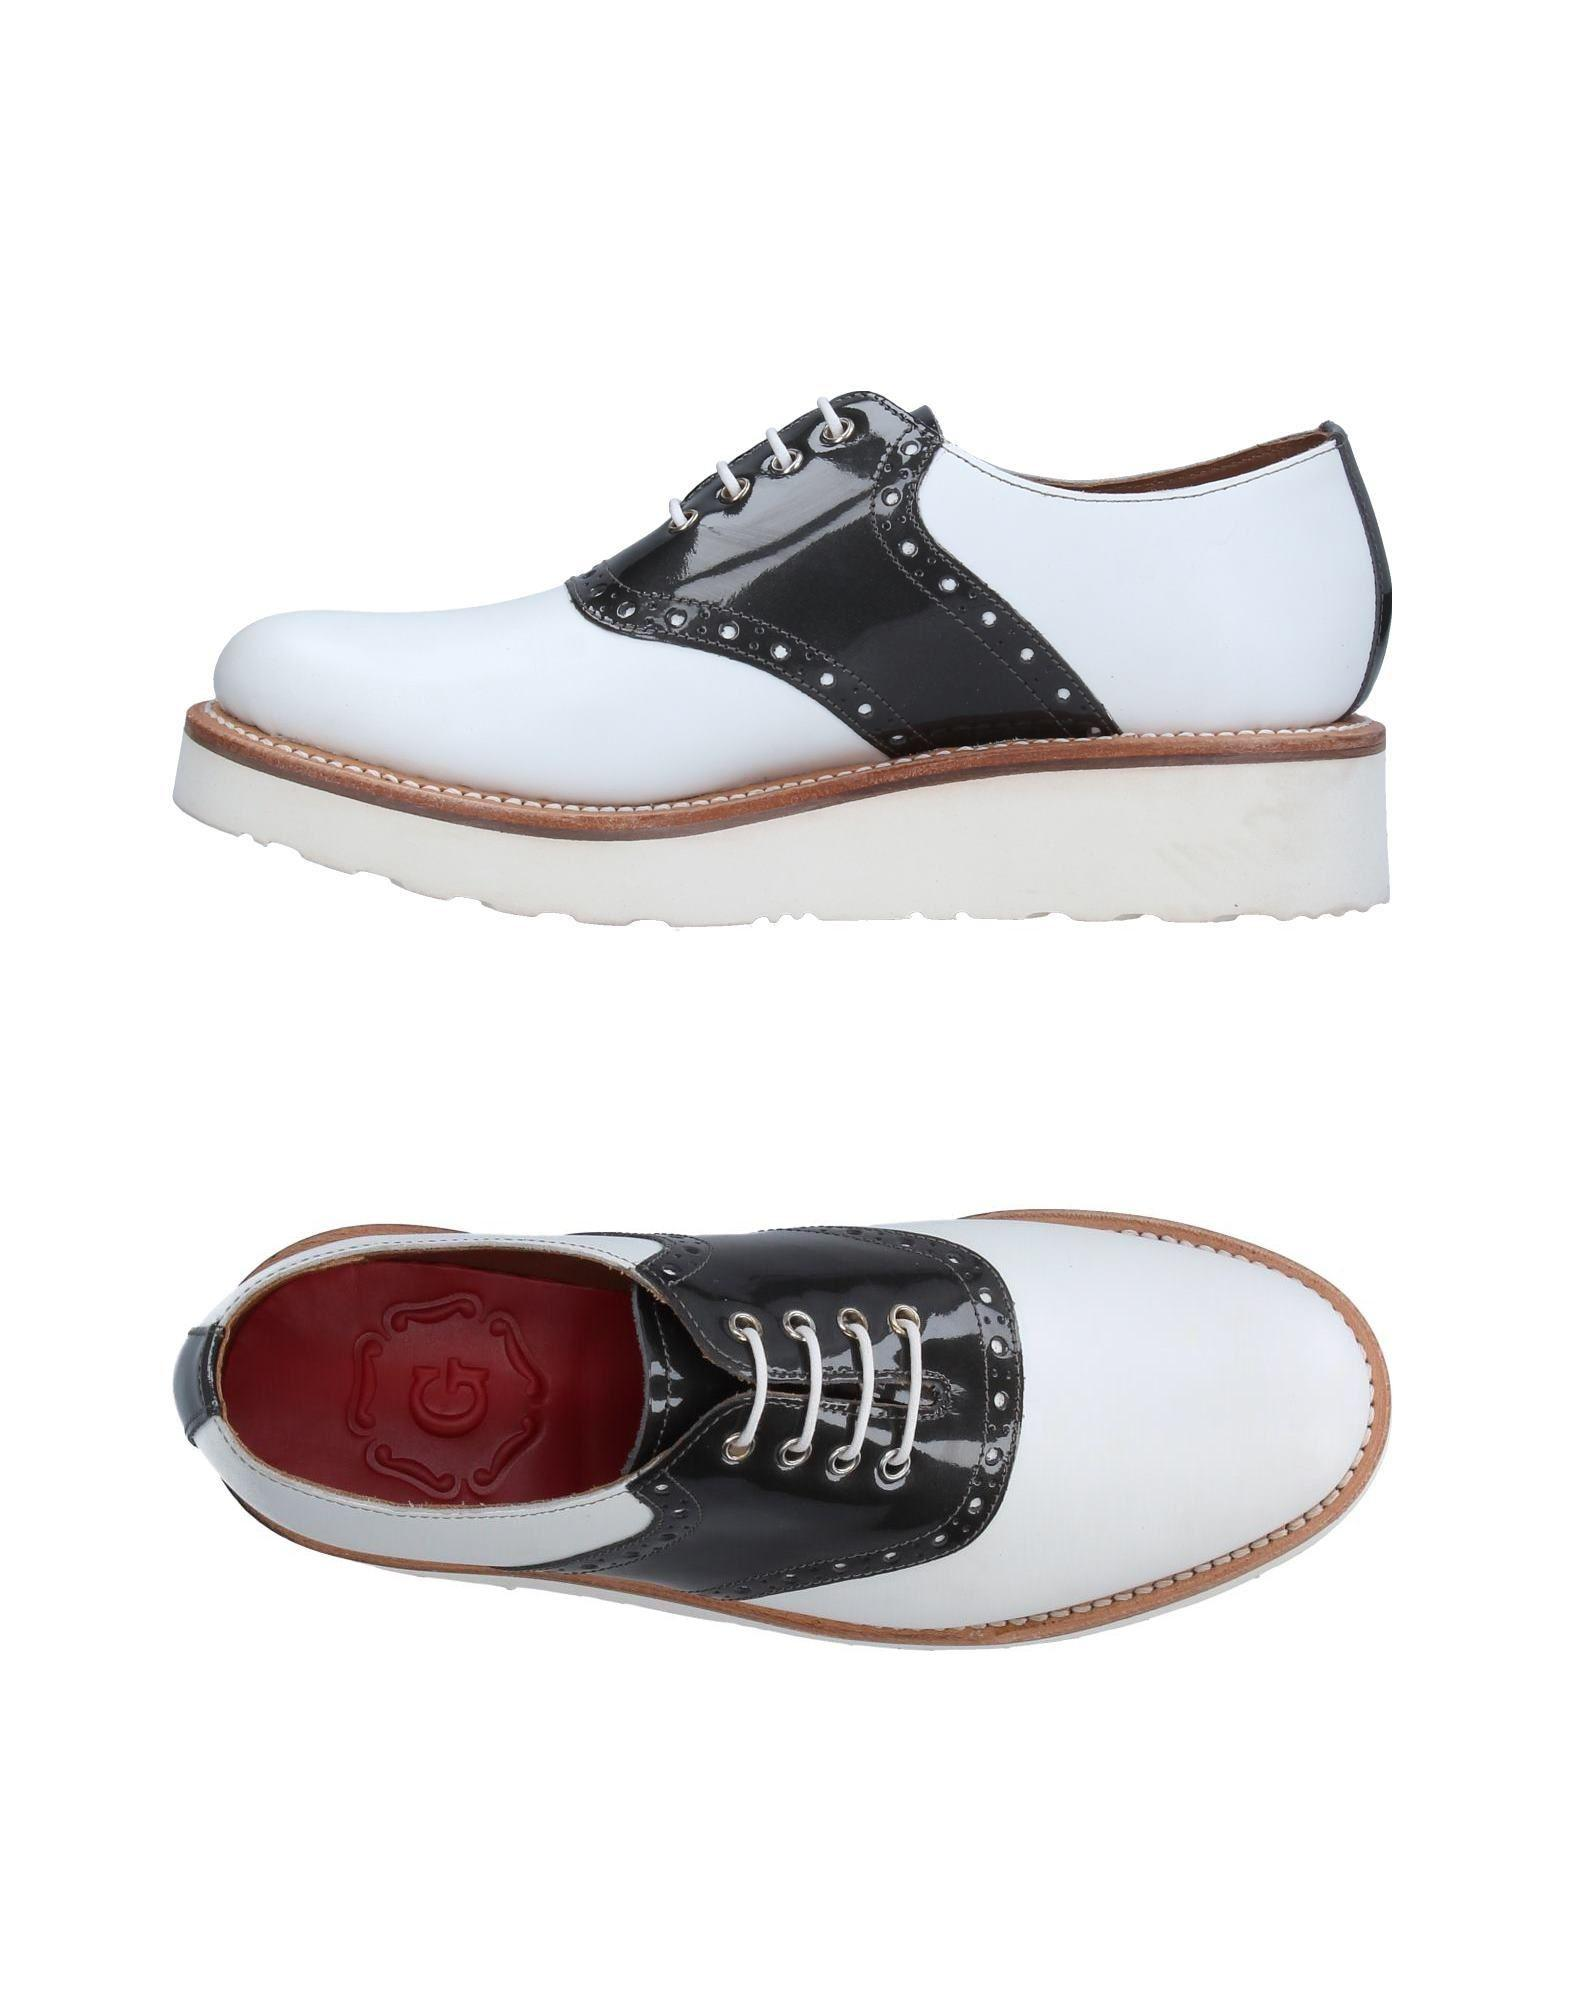 36d0bf7cc9c Grenson Lace-up Shoe in White - Lyst